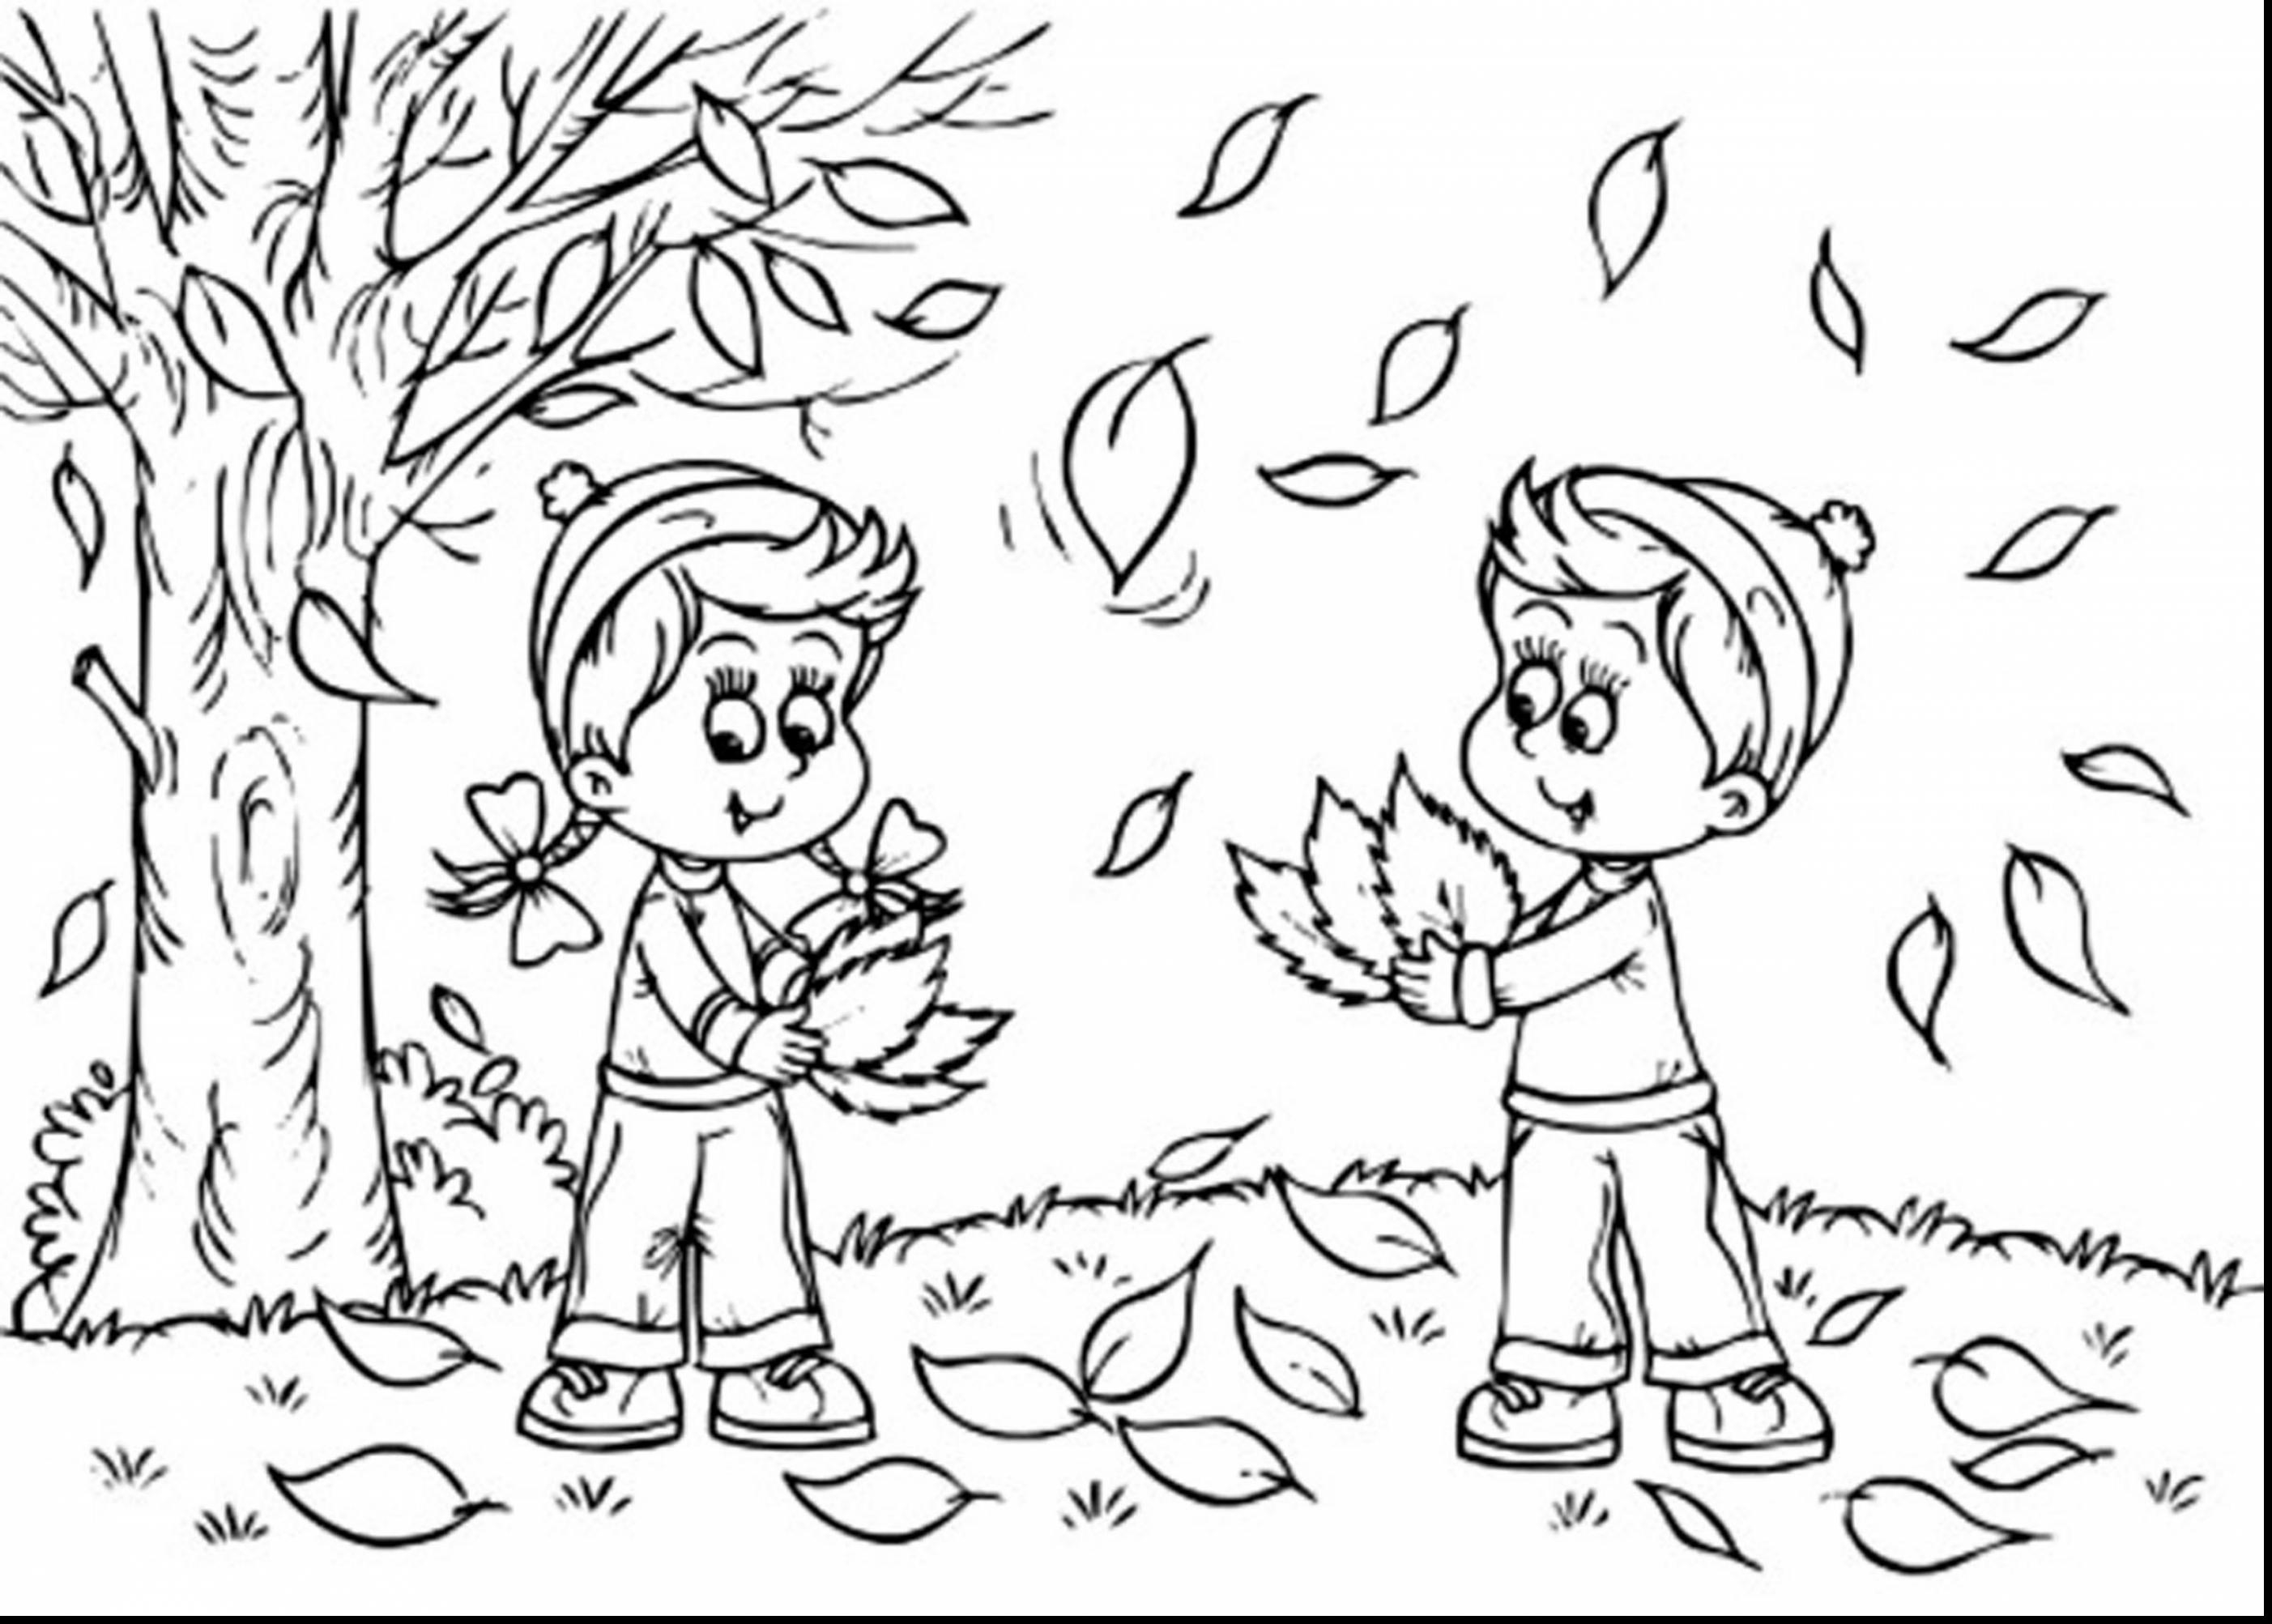 photo to coloring page - kindergarten fall coloring pages superb fall landscape coloring page with free fall coloring pages coloring pages disney